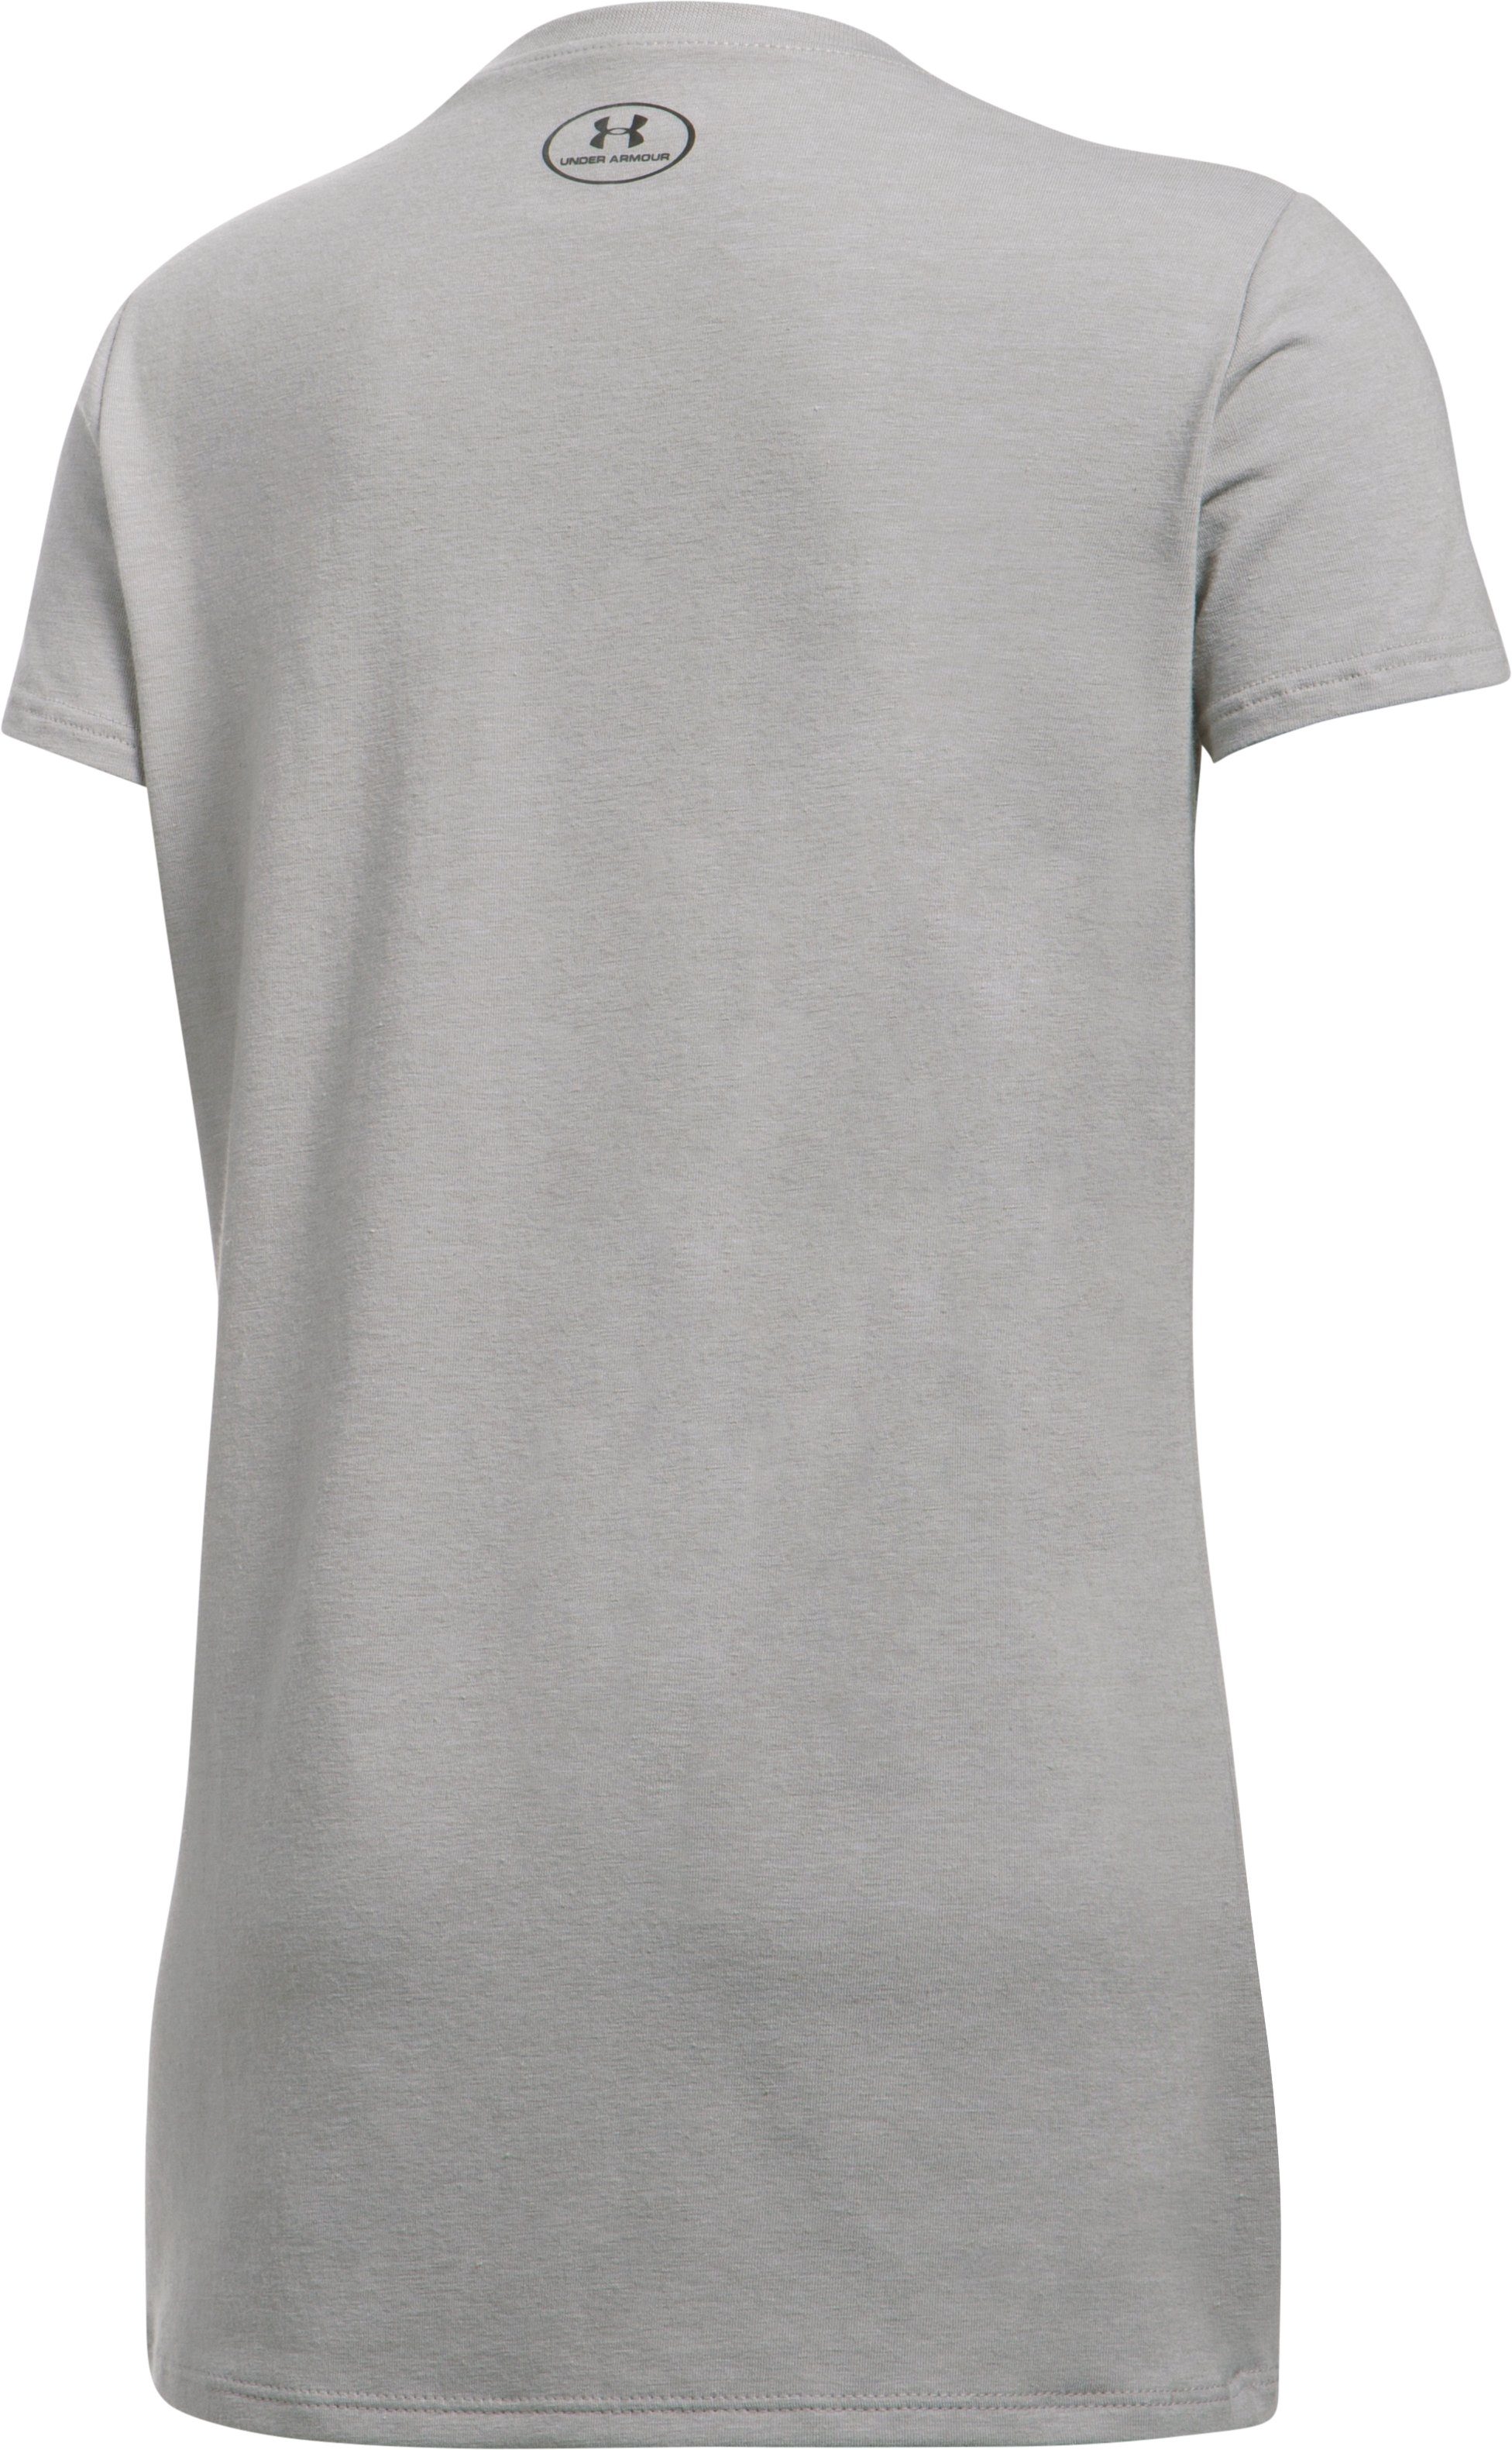 USA Gym SS T, True Gray Heather, undefined